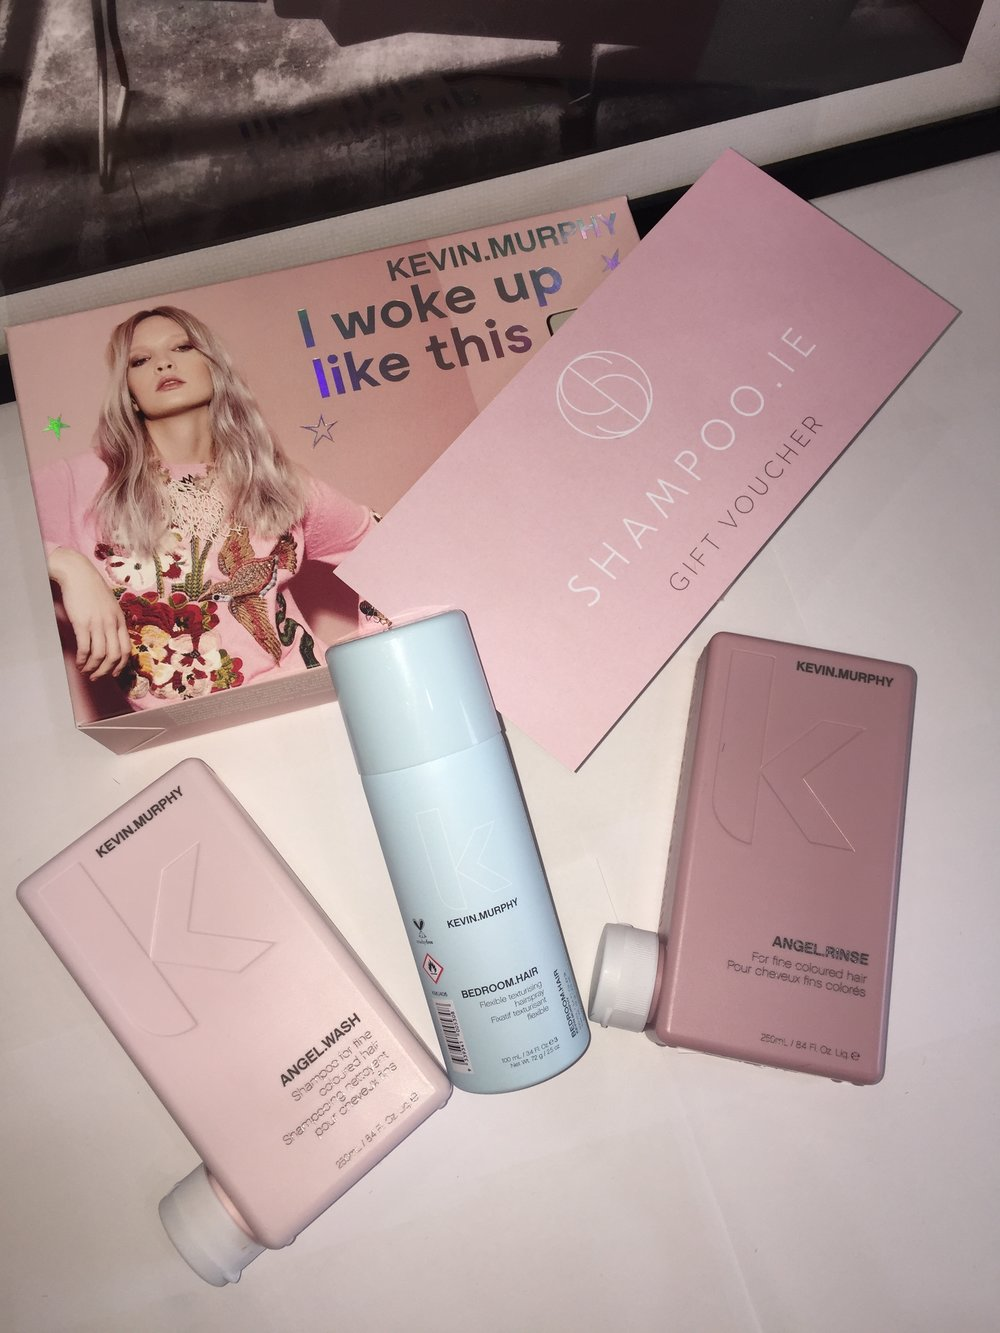 I woke up like this - Perfect for fine, broken, or dry hair this set will add volume and body with dynamic duo ANGEL.WASH and RINSE. Infused with Mango, Cocoa Butter and Green Tea Extracts. Finish off with a touch of BEDROOM.HAIR for an enviably sexy undone look. Now €55.